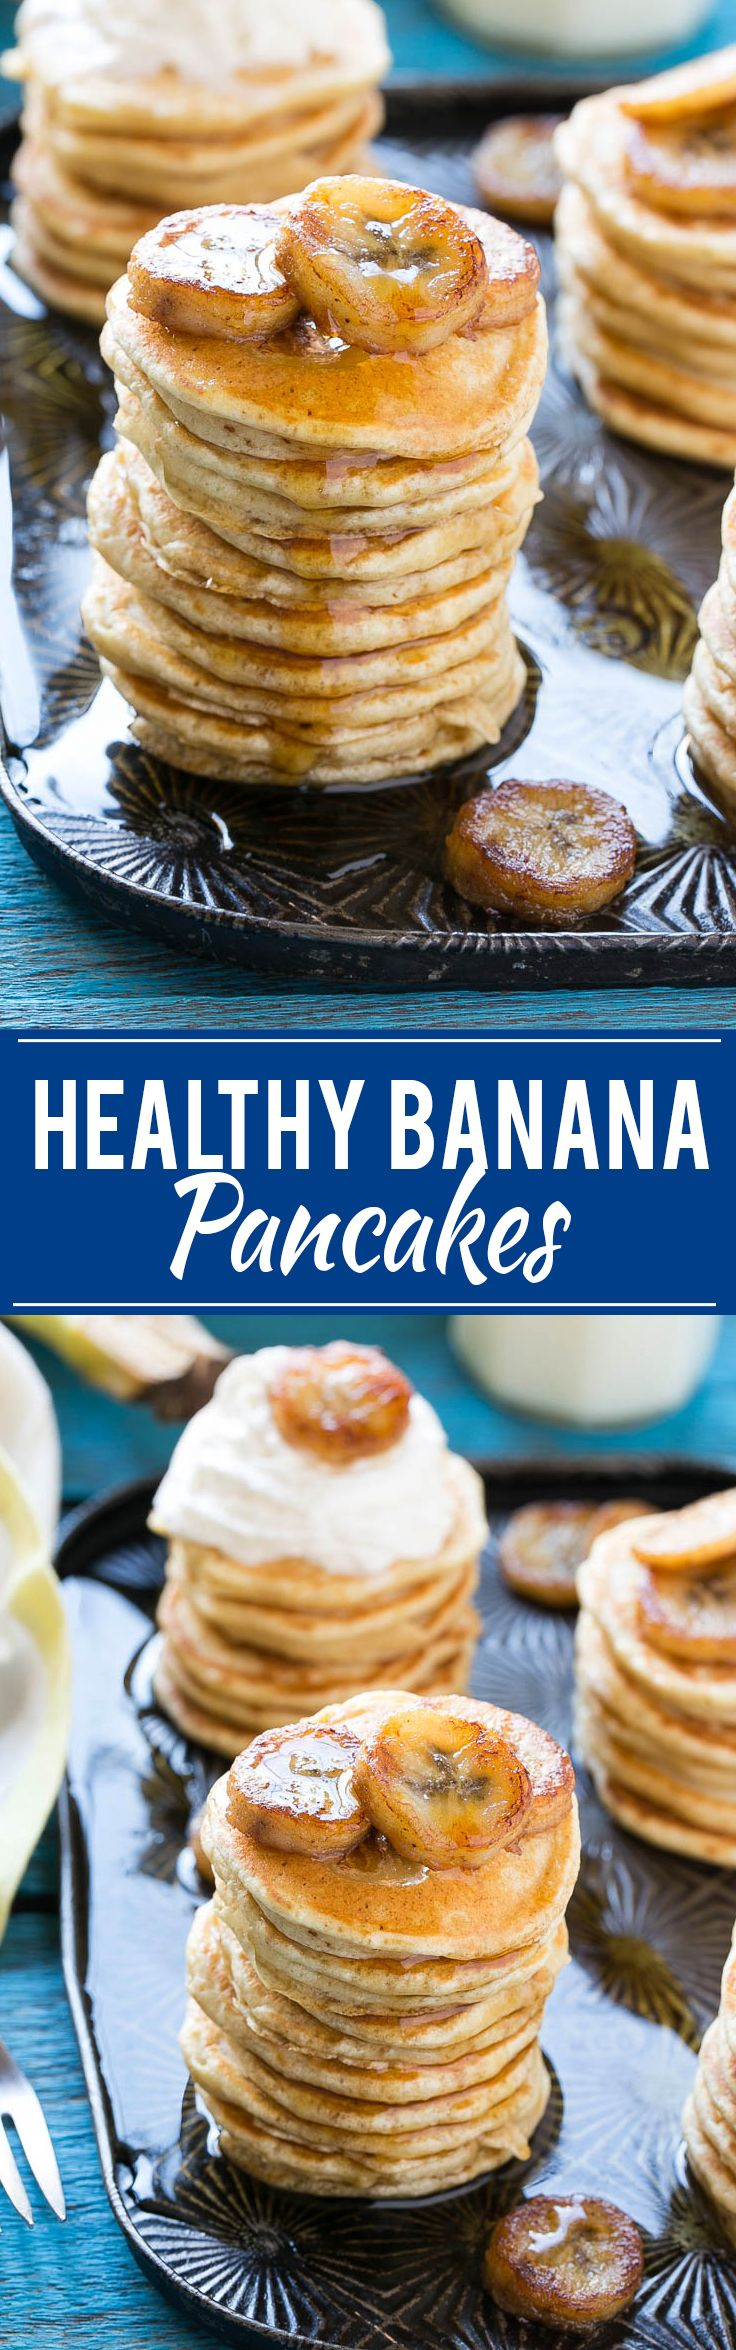 Healthy Banana Pancakes - Made with whole wheat flour and caramelized bananas. They're easy to make and super kid friendly!